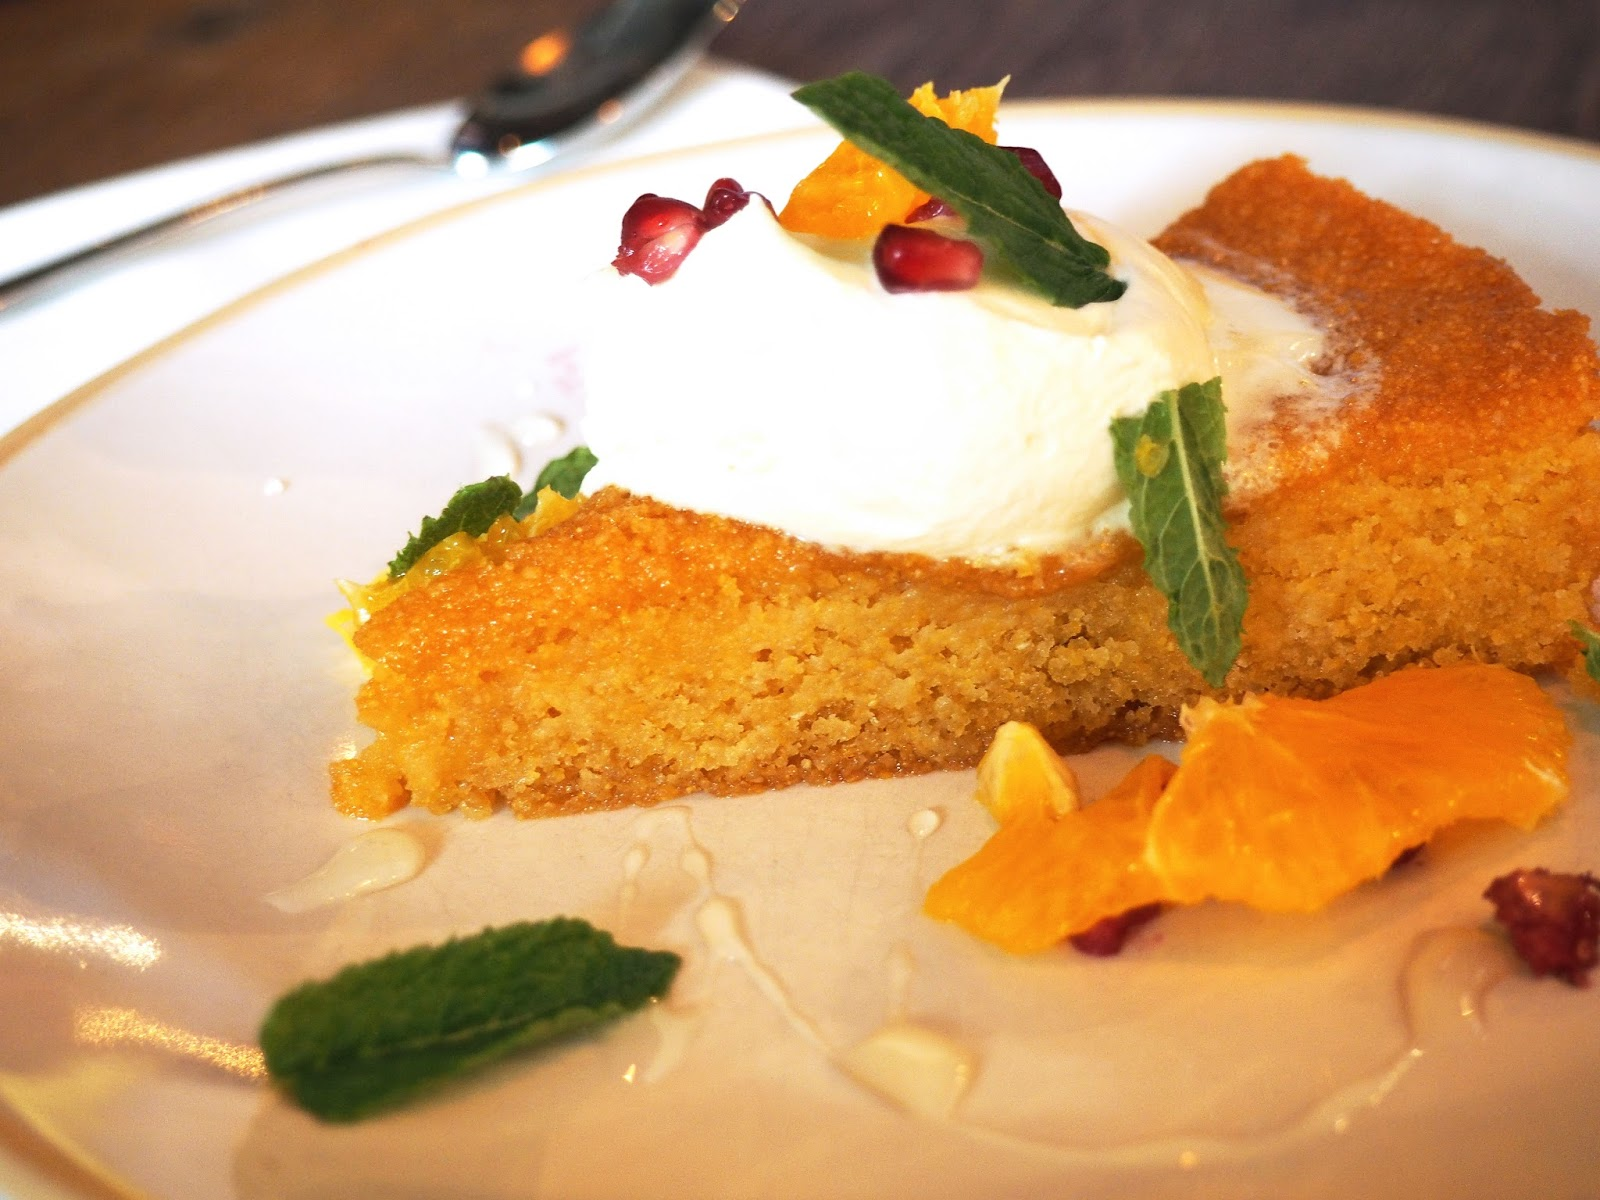 Jamie's Italian Super Lunch Menu Orange Blossom Polenta Cake